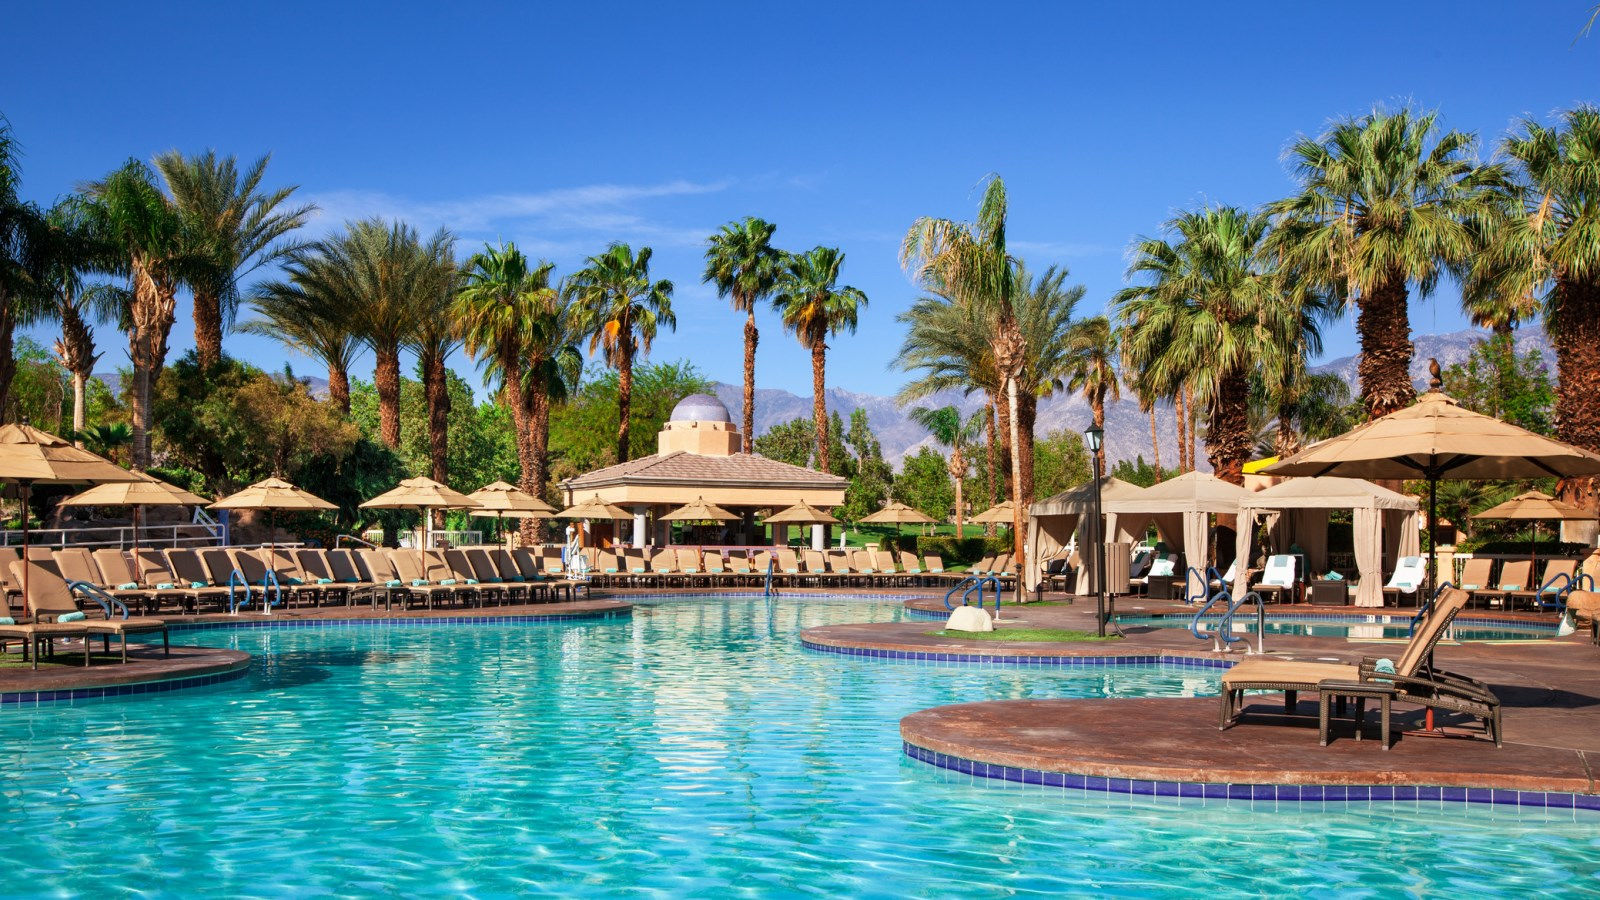 Palm Springs Resort Features - Las Brisas Pool